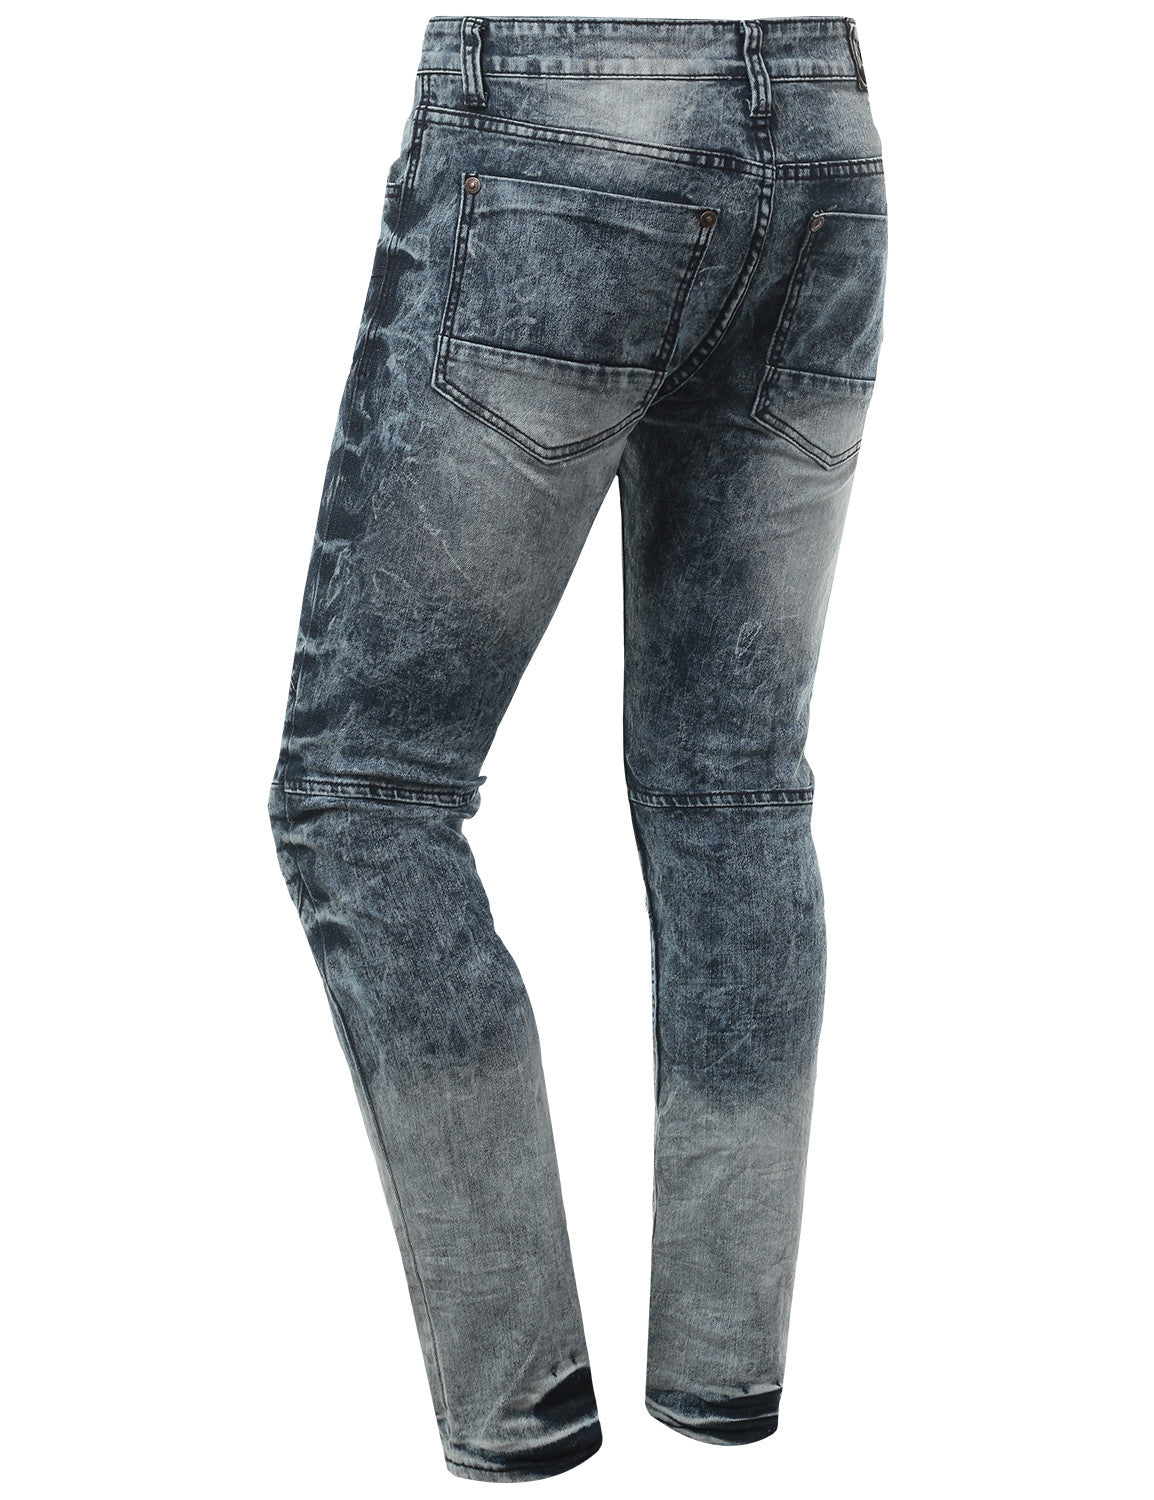 INDIGO Skinny Fit Jeans w/ Zipper Trim - URBANCREWS